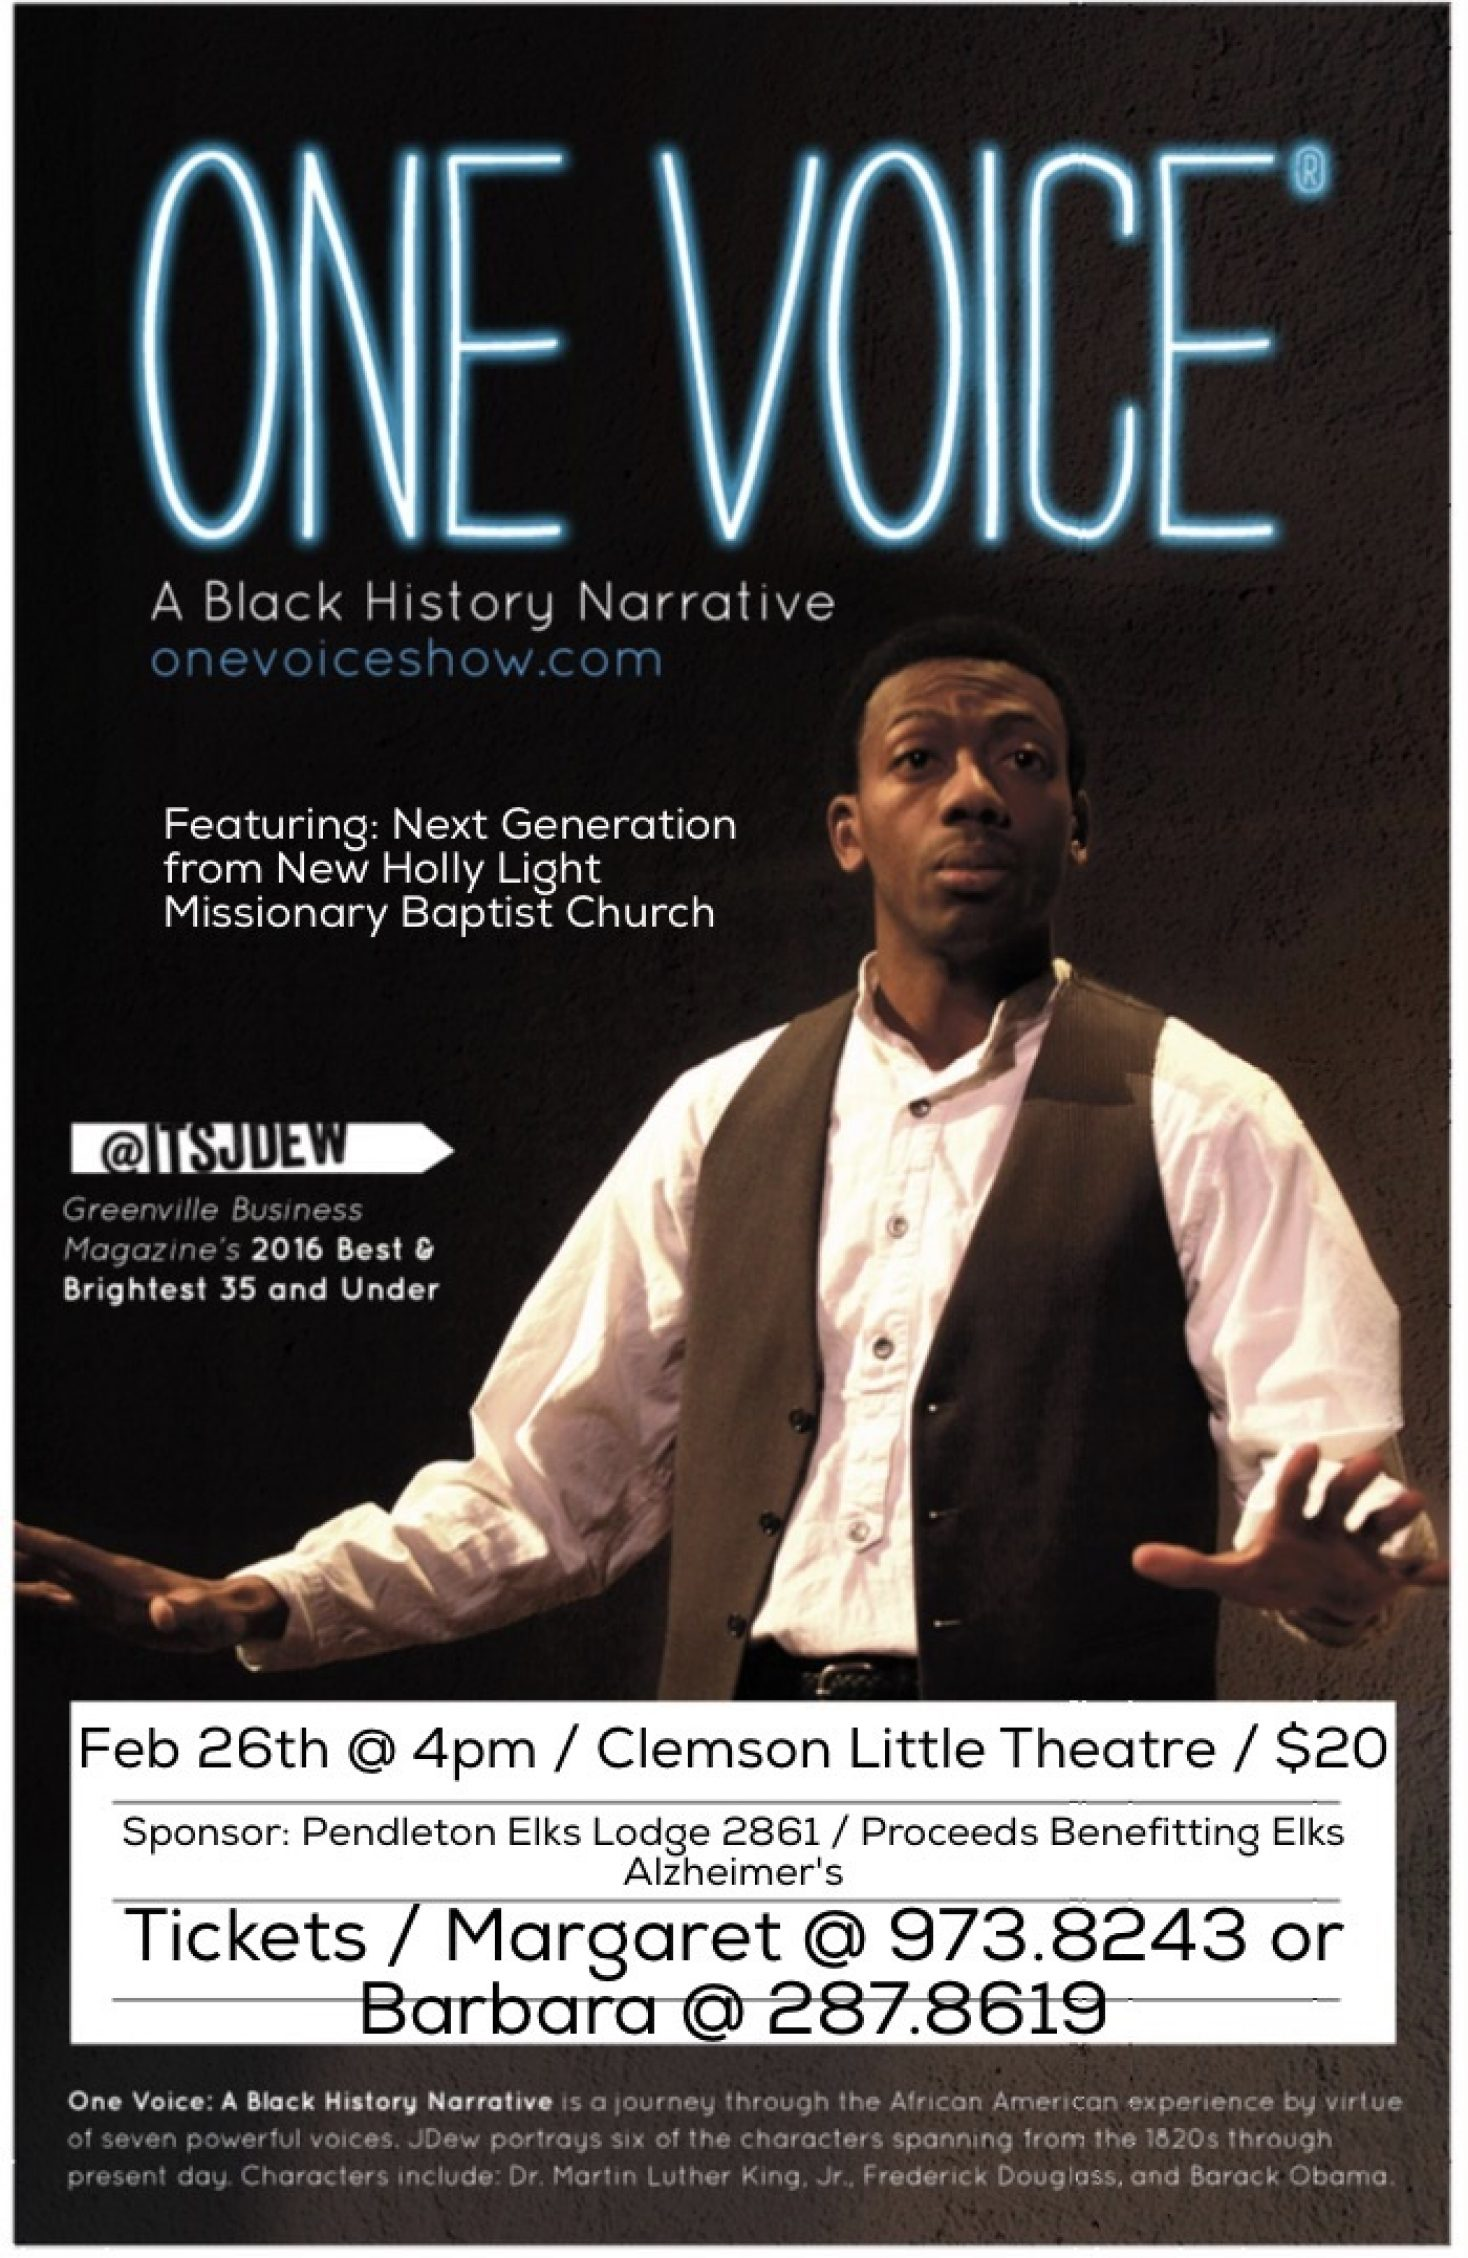 One Voice – A Black History Narrative